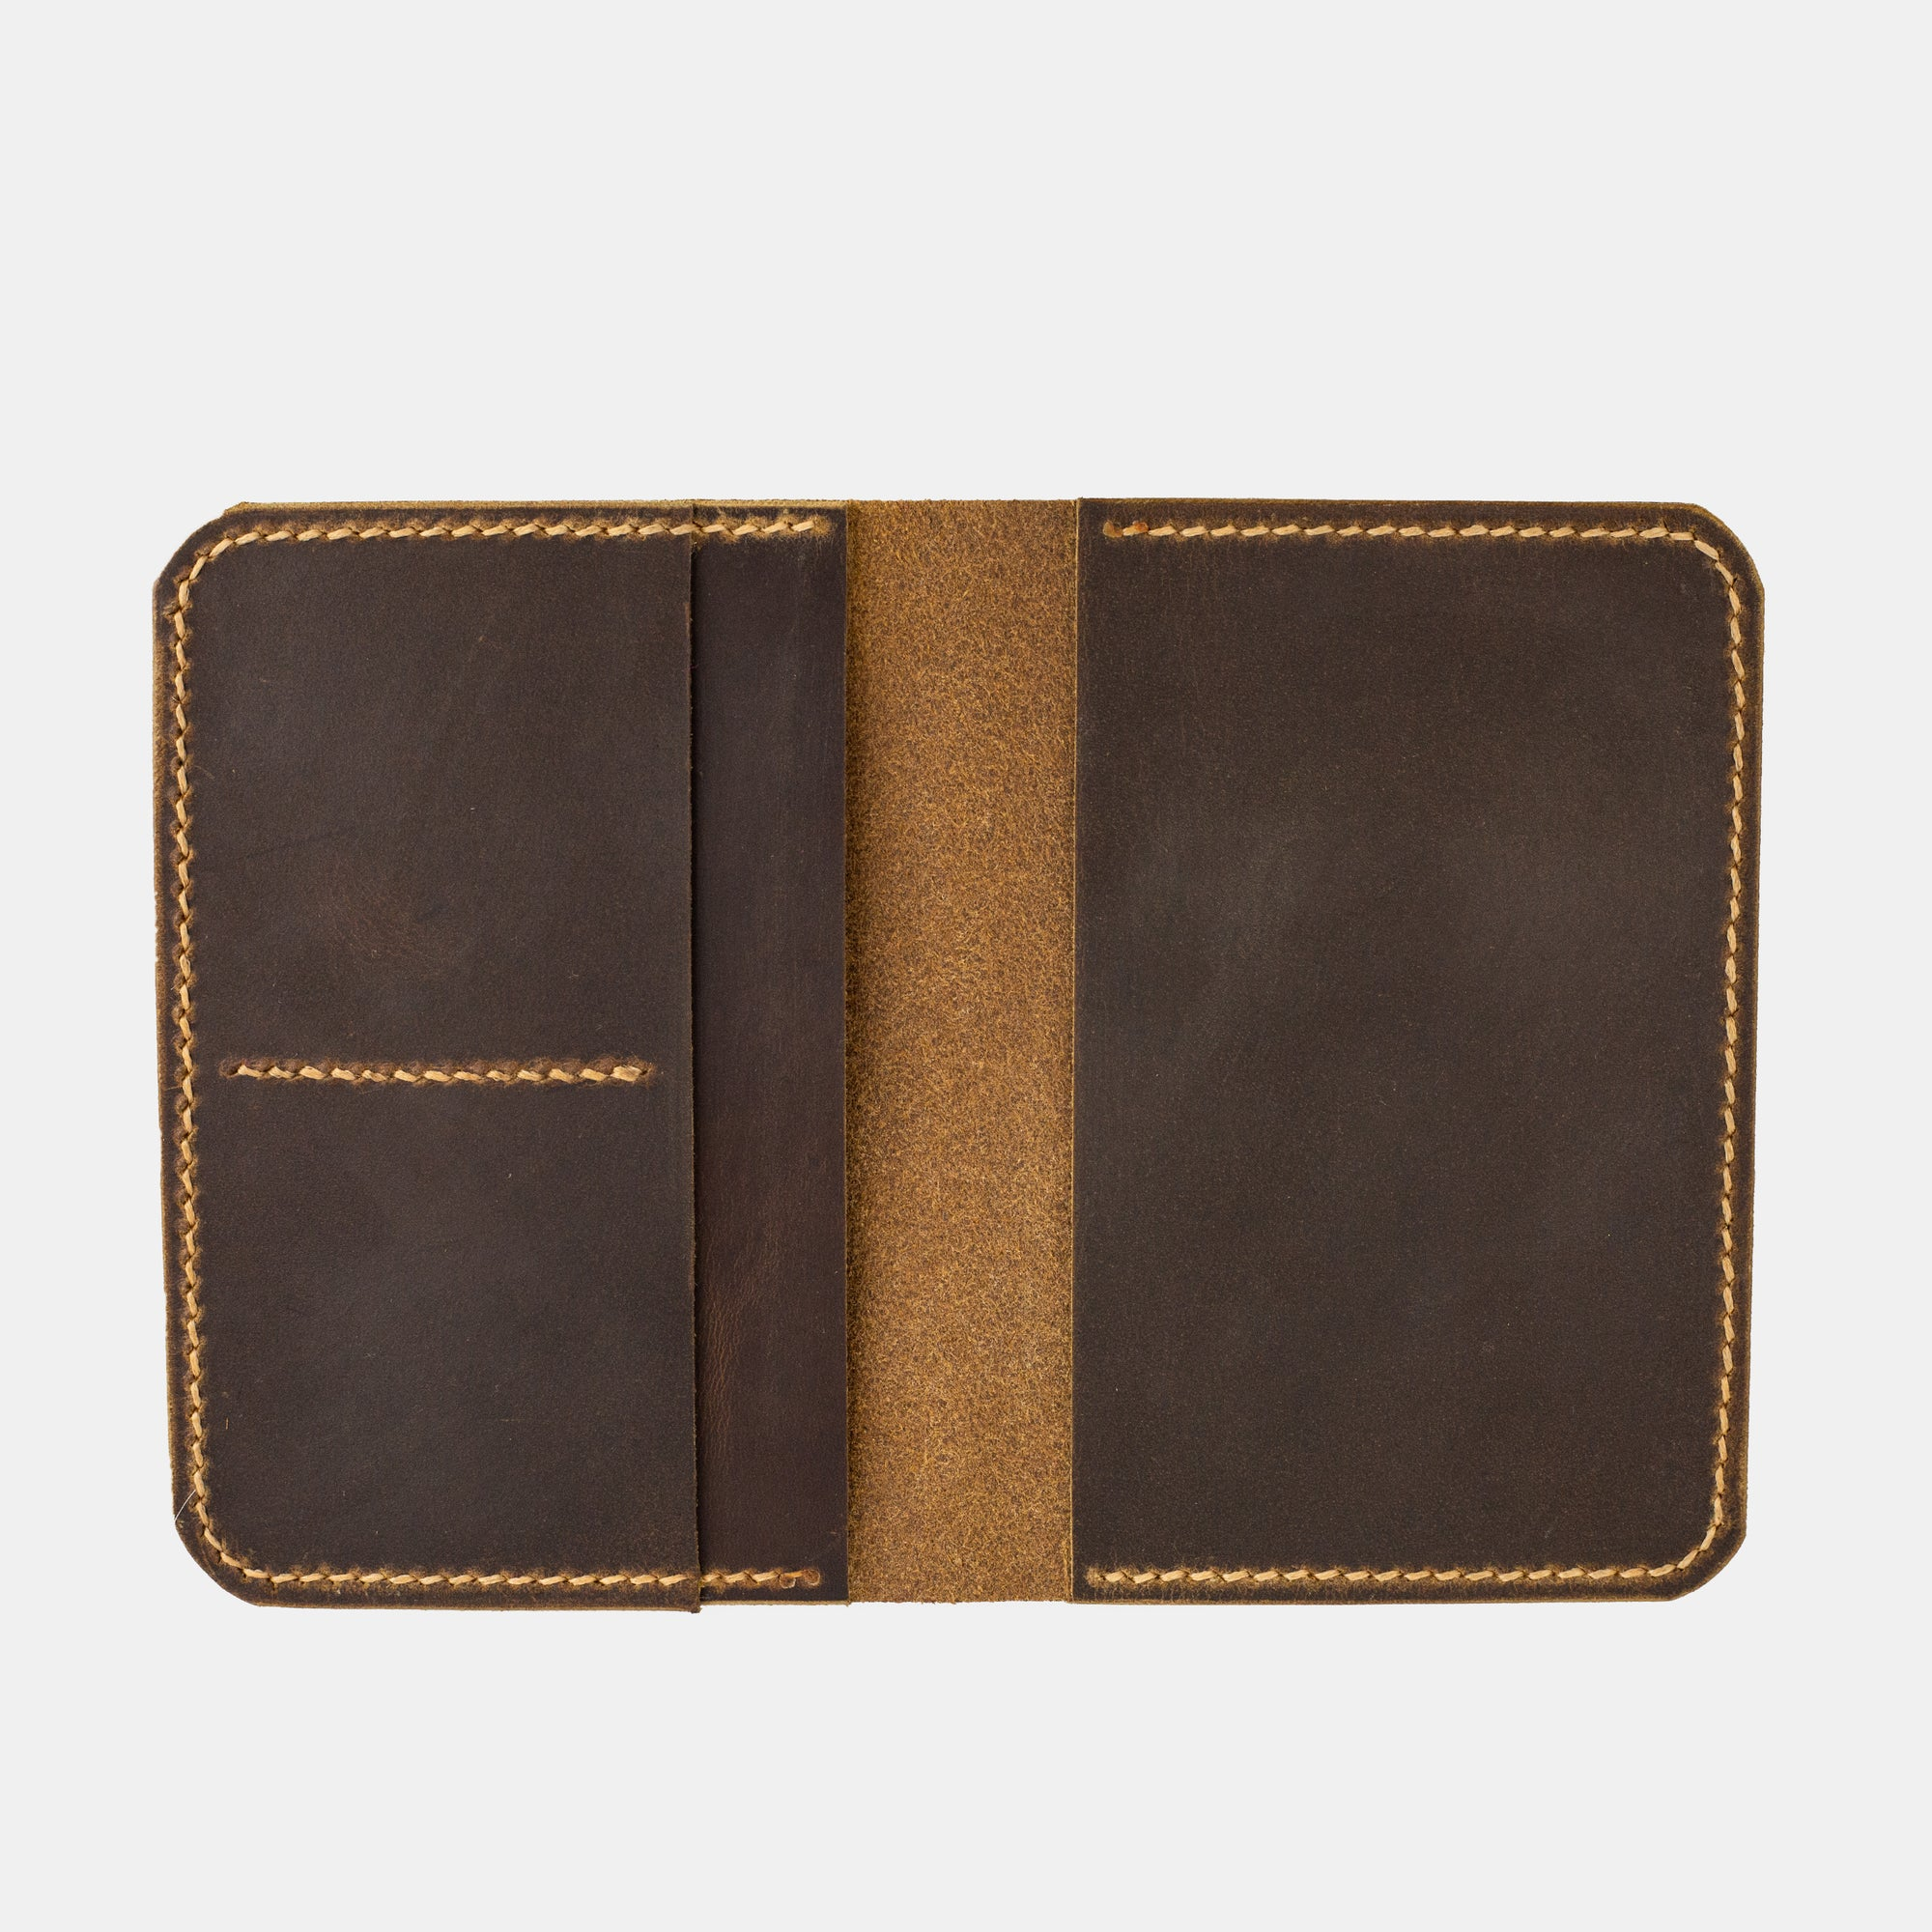 Leather Passport Wallet - RYAN London